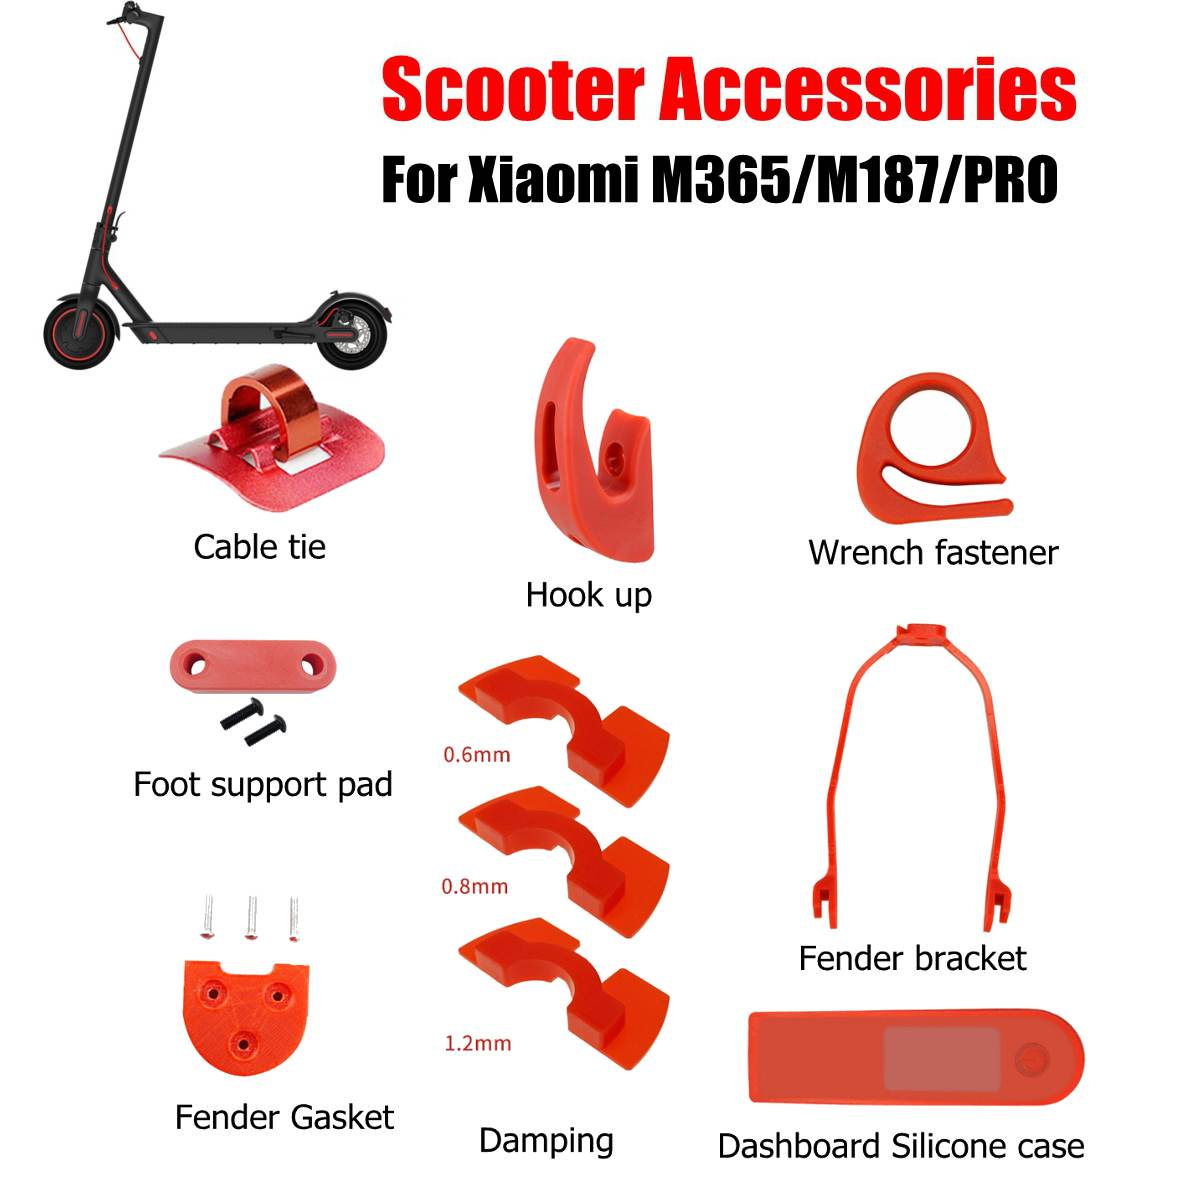 for Xiaomi M365 Pro Accessories Electric Scooter Fender Bracket Dashboard Cover Shock Absorb Pads Front Hook